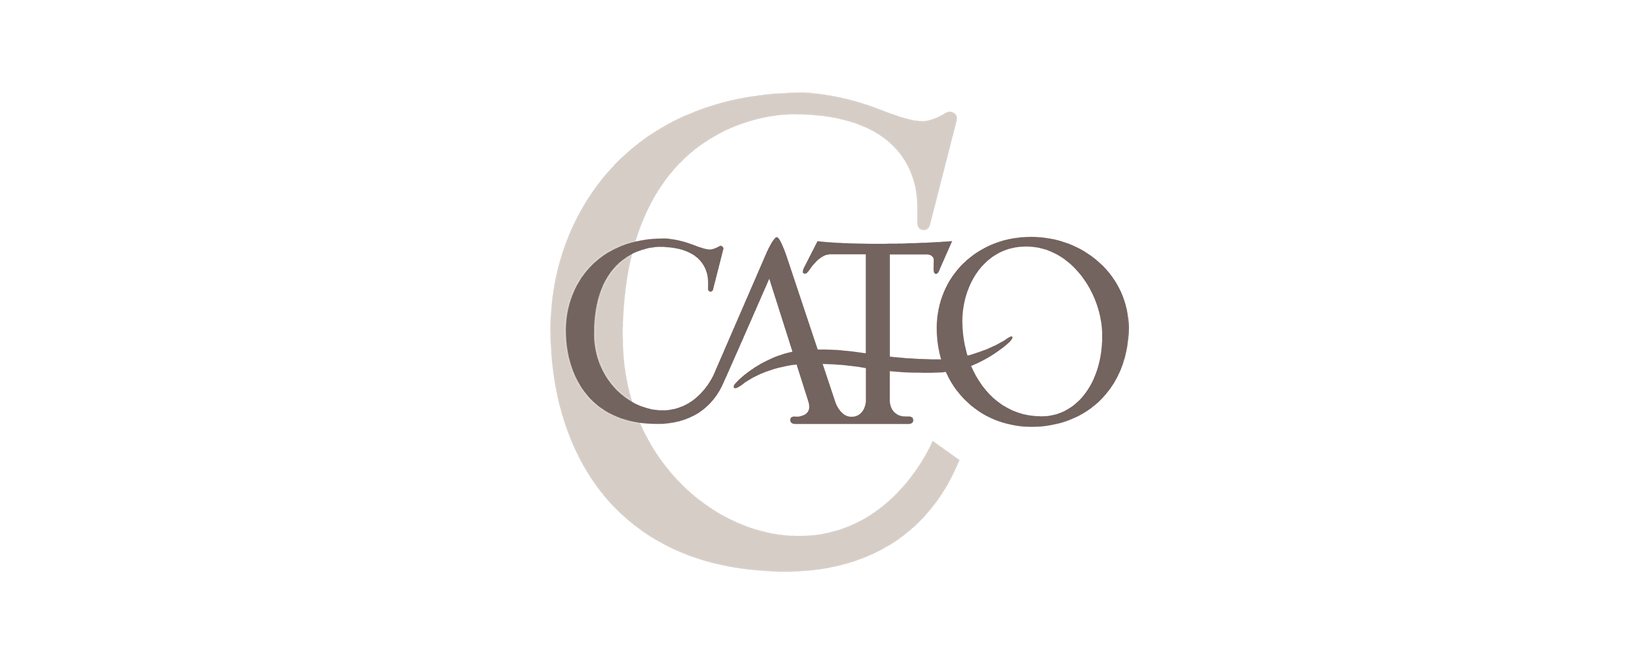 Cato Fashions Review - Your Fashion, Delivered.